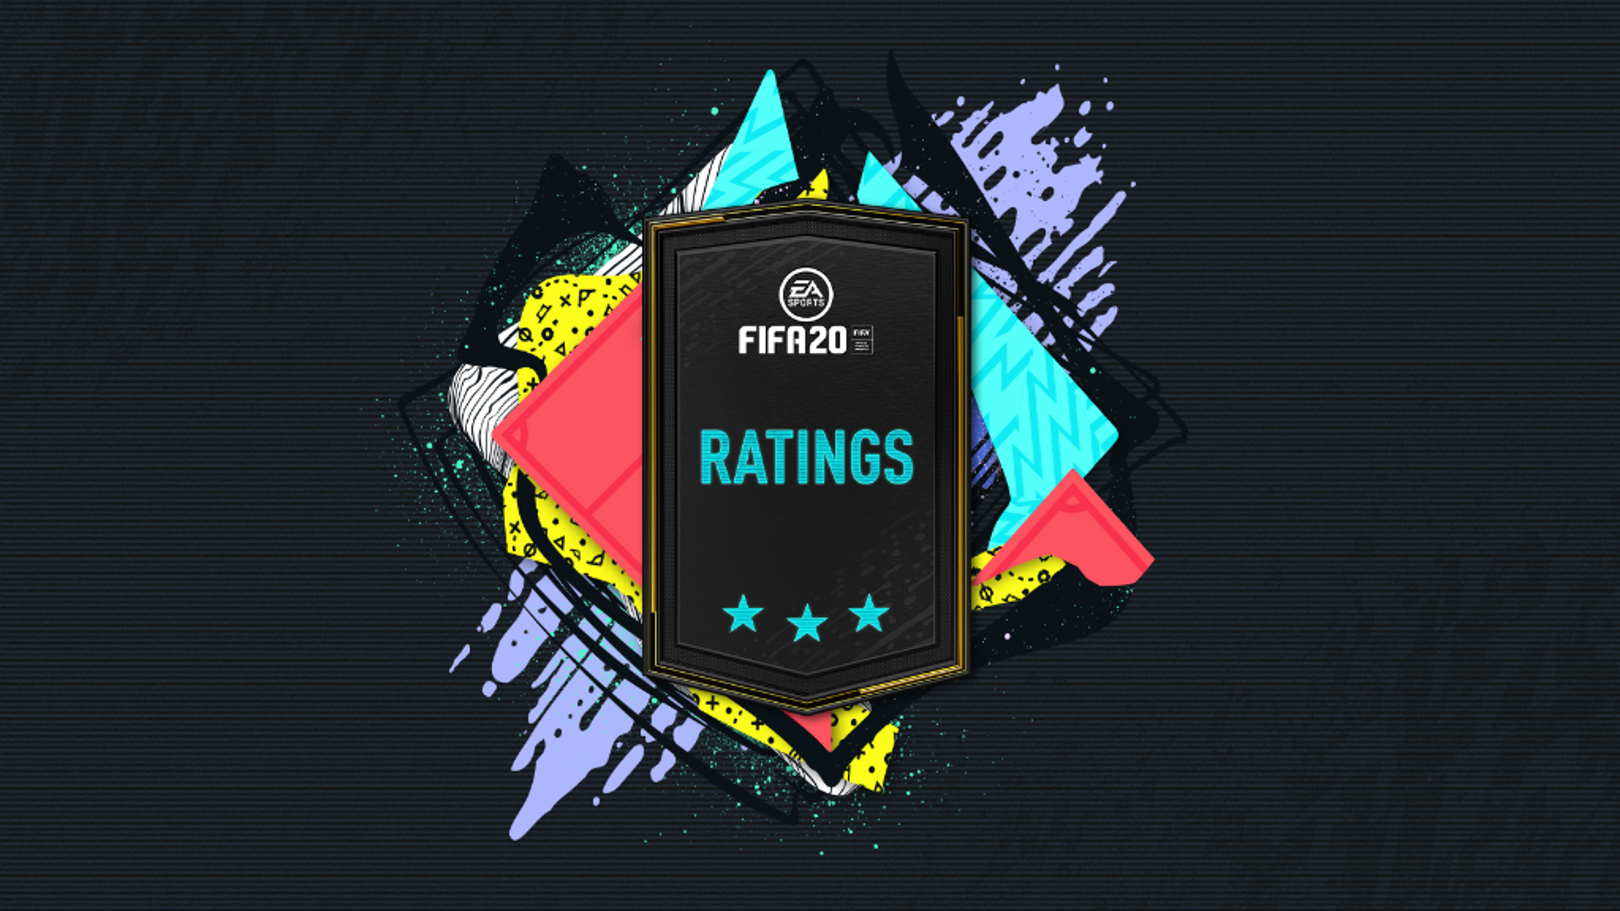 City's FIFA 20 ratings confirmed